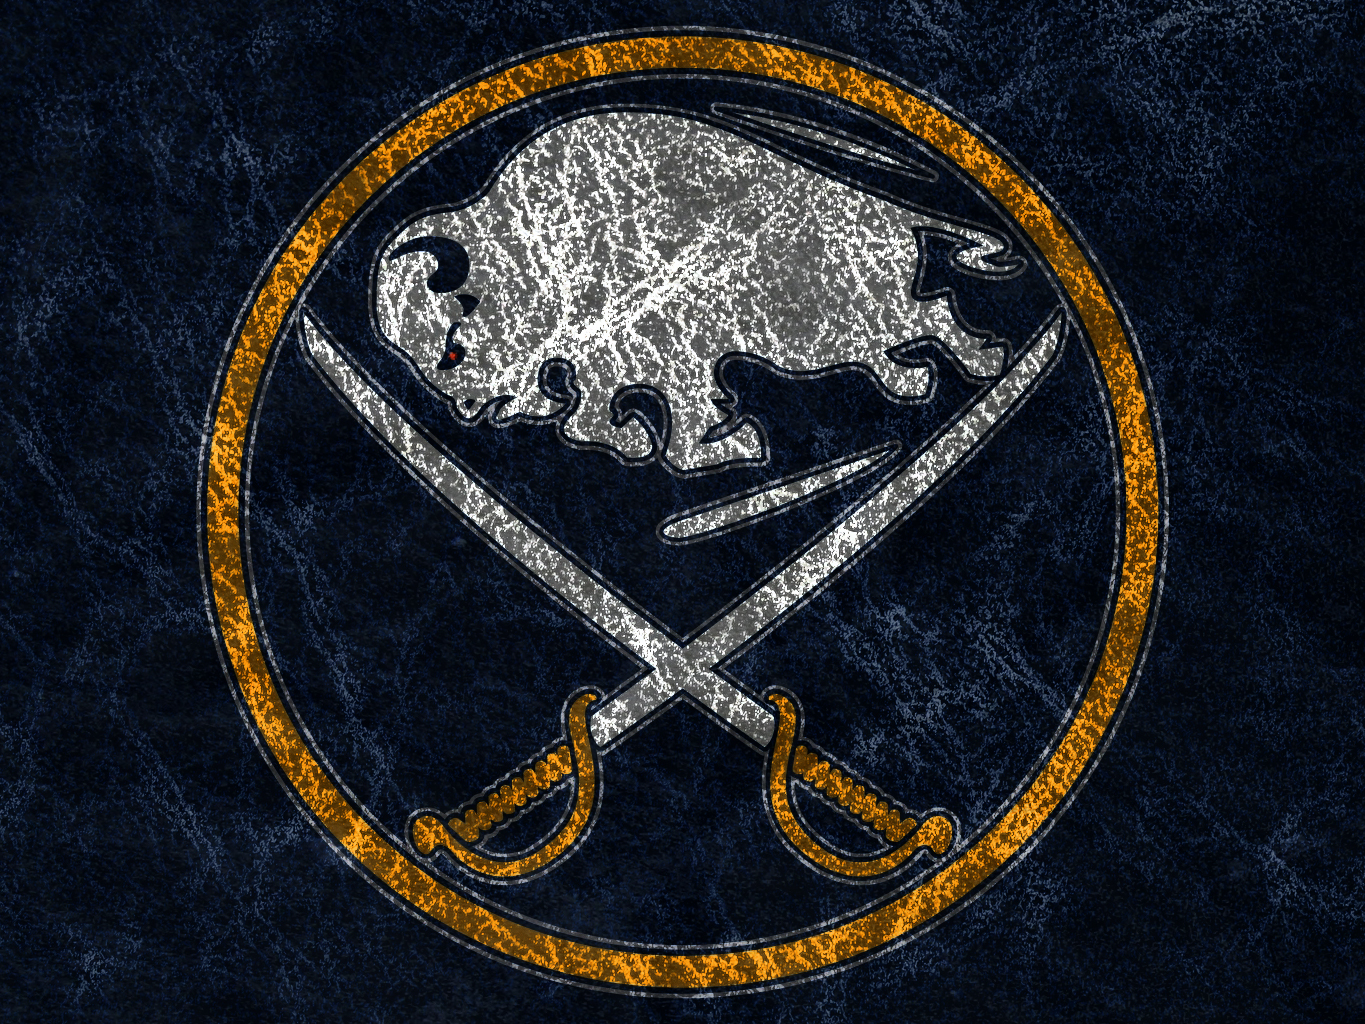 Buffalo Sabres Wallpapers Download 5LE41DR WallpapersExpertcom 1365x1024